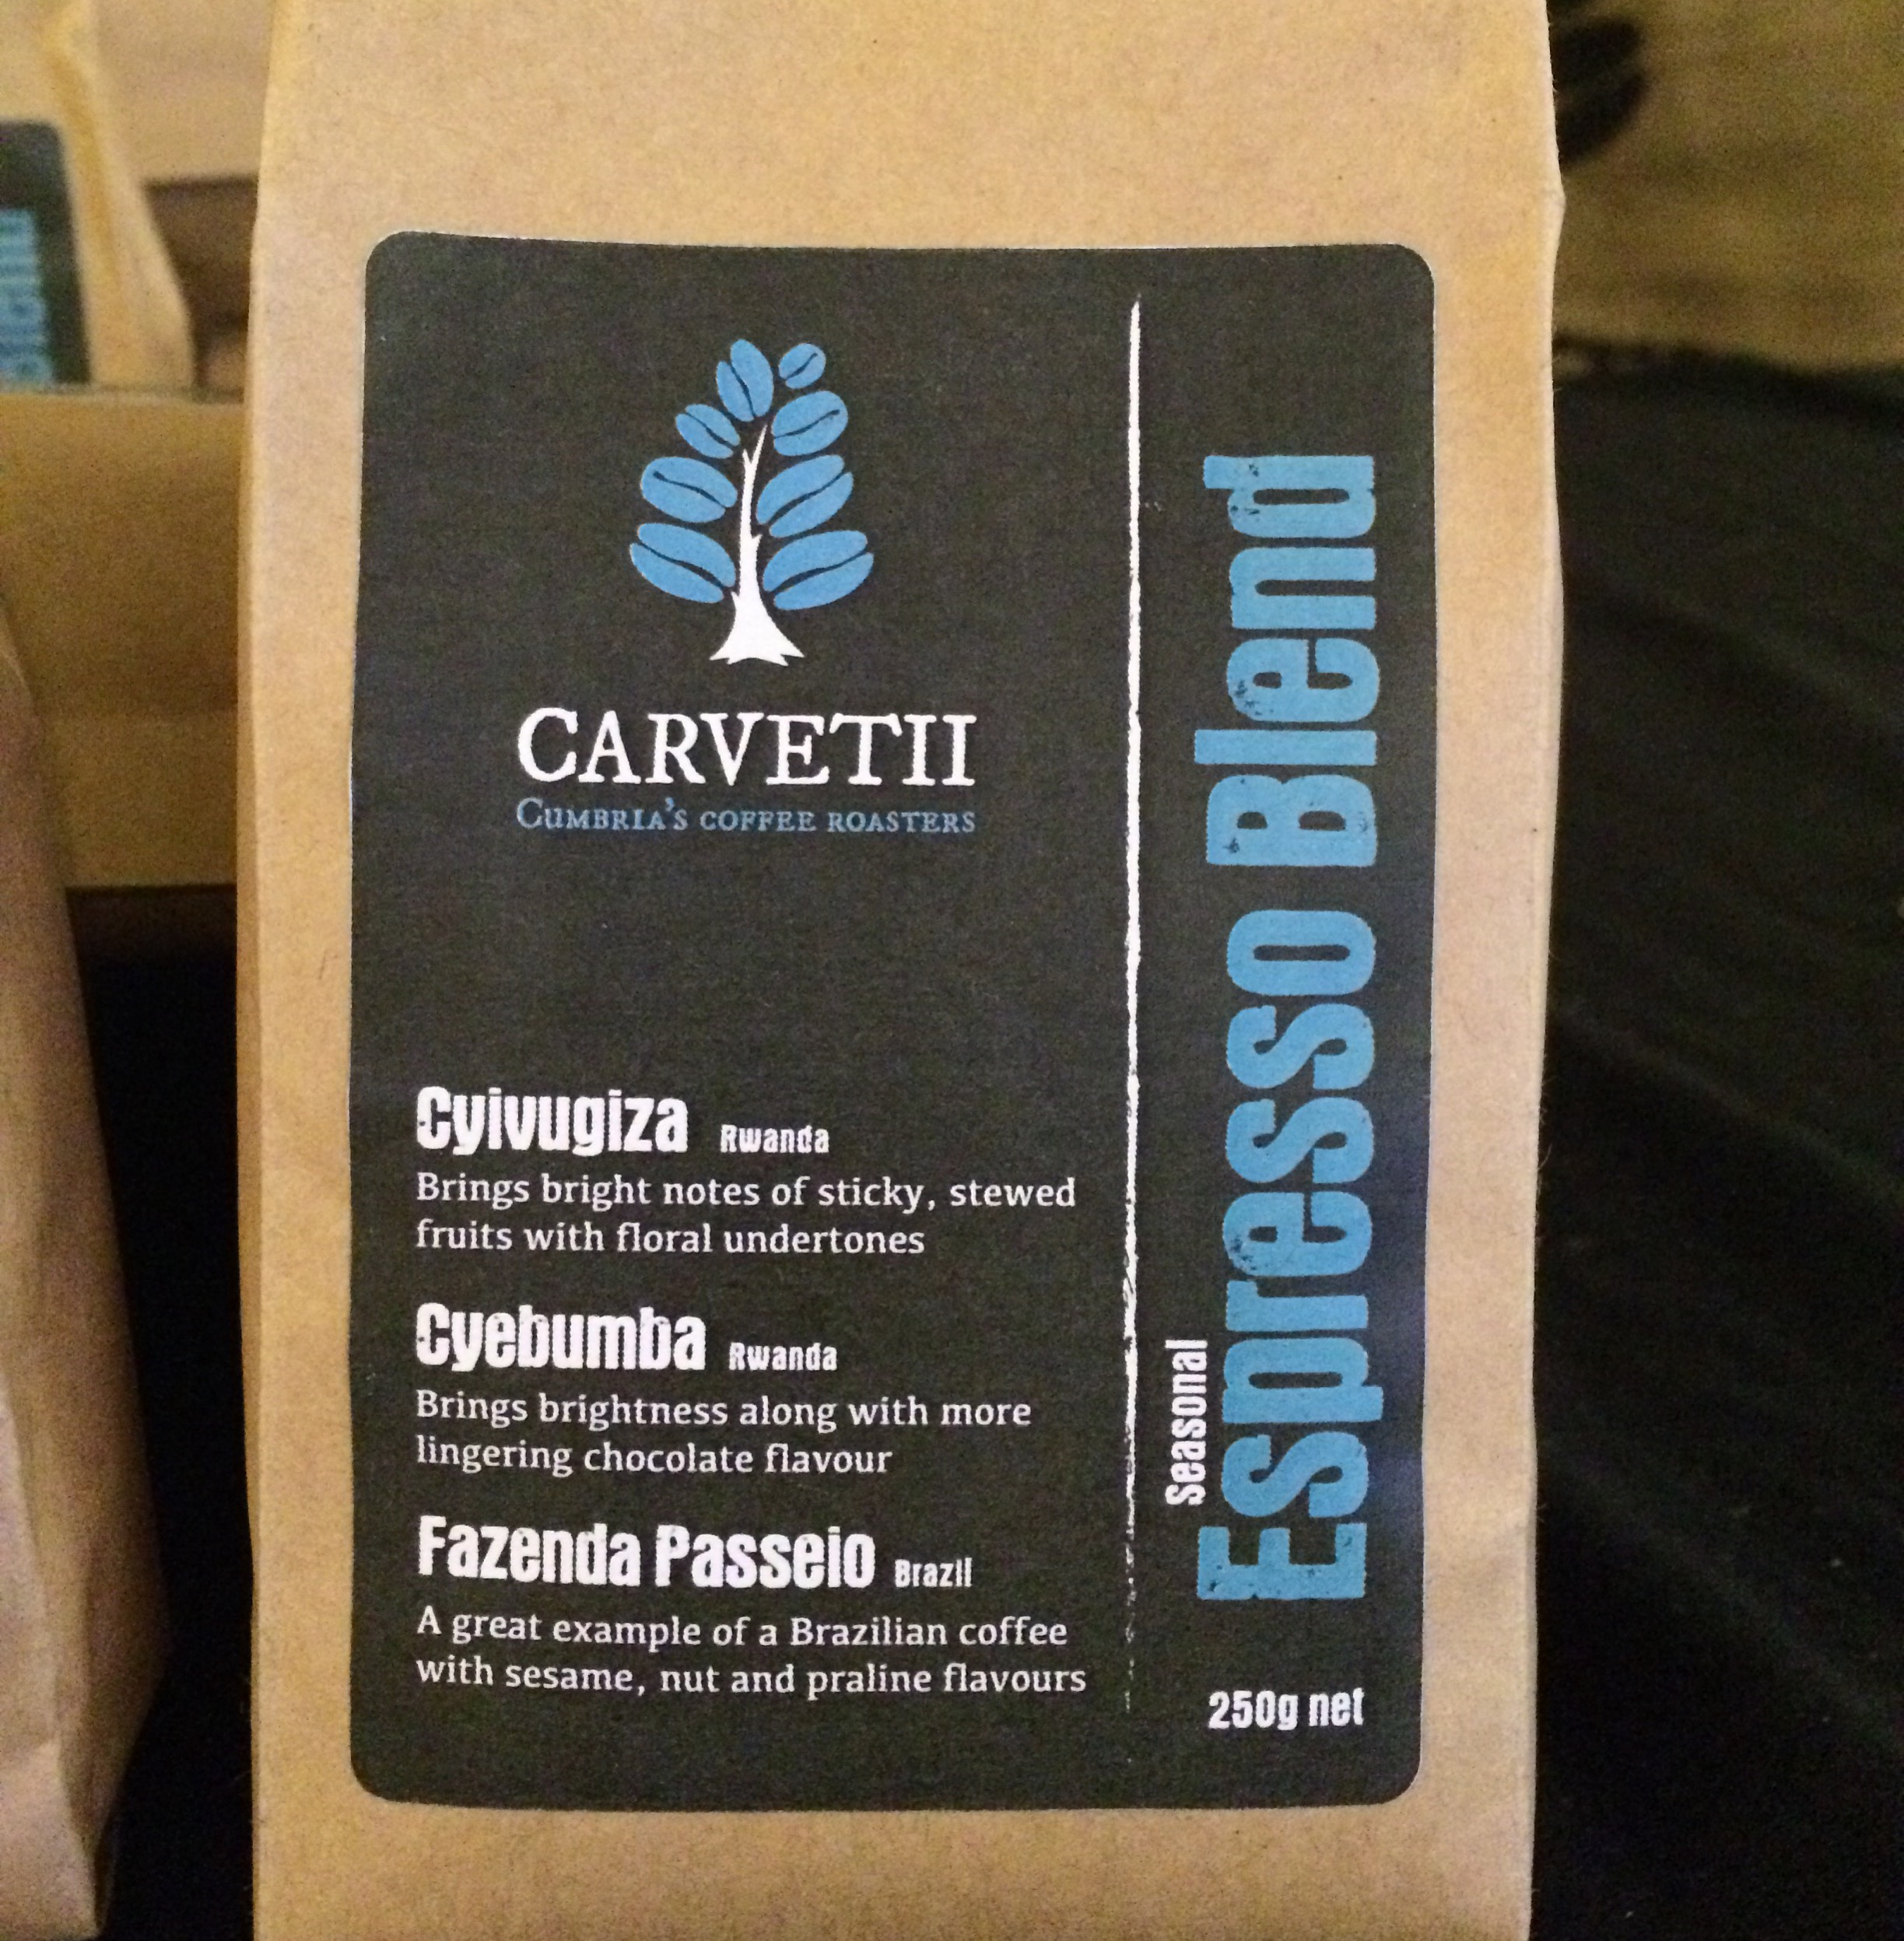 The impact of buying a bag of our coffee via @carvetiicoffee